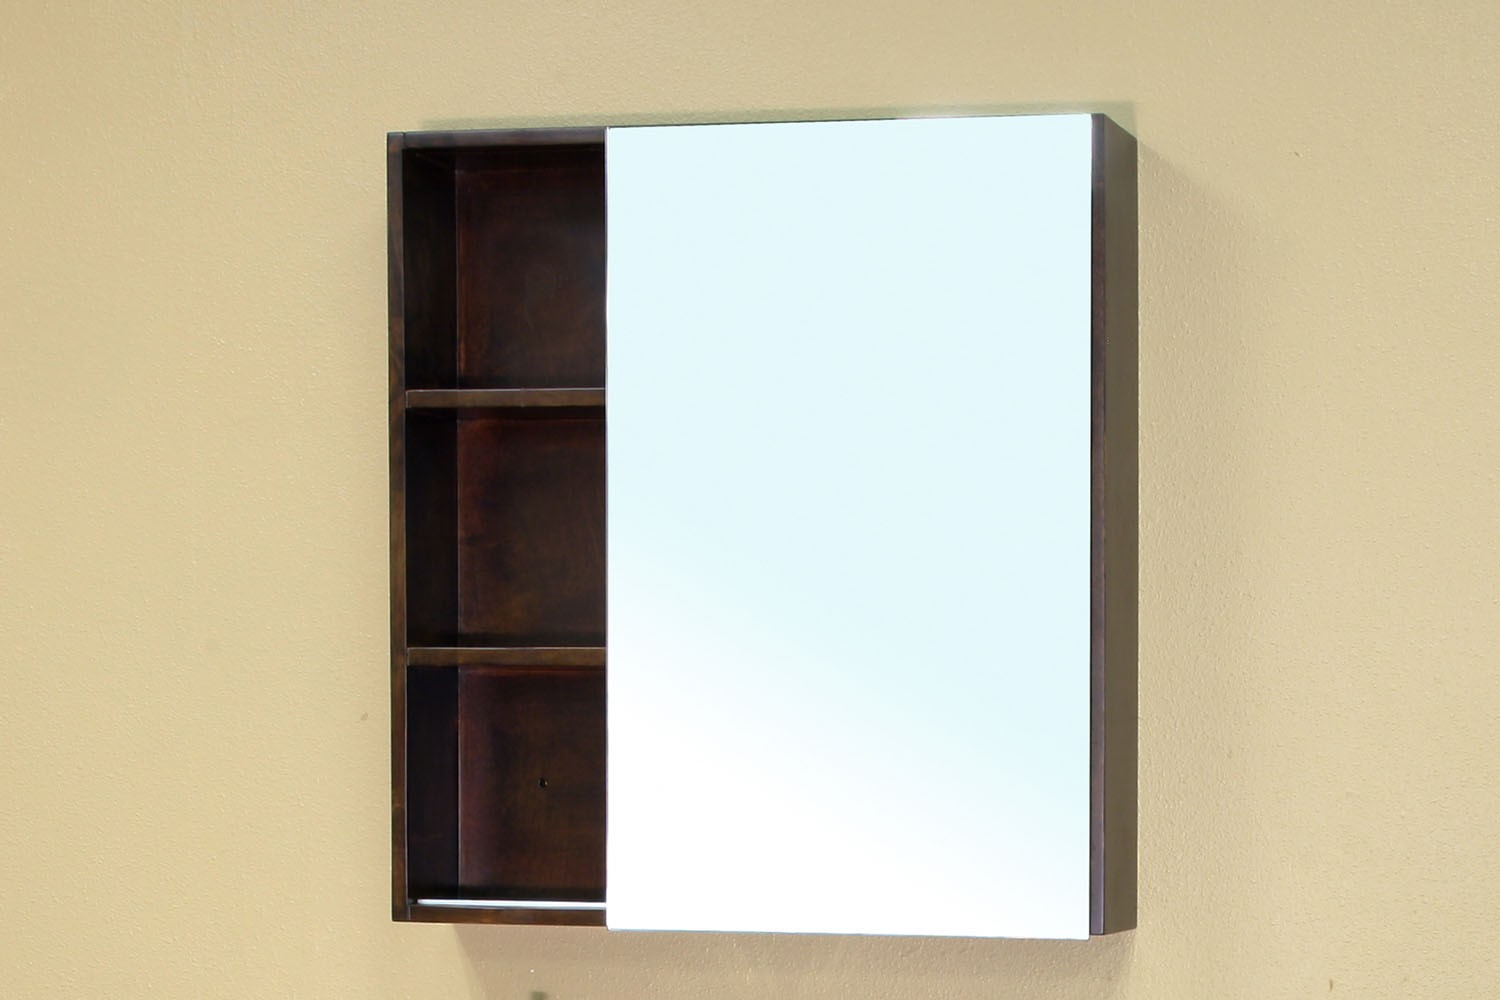 Image of: mirrored medicine cabinet picture